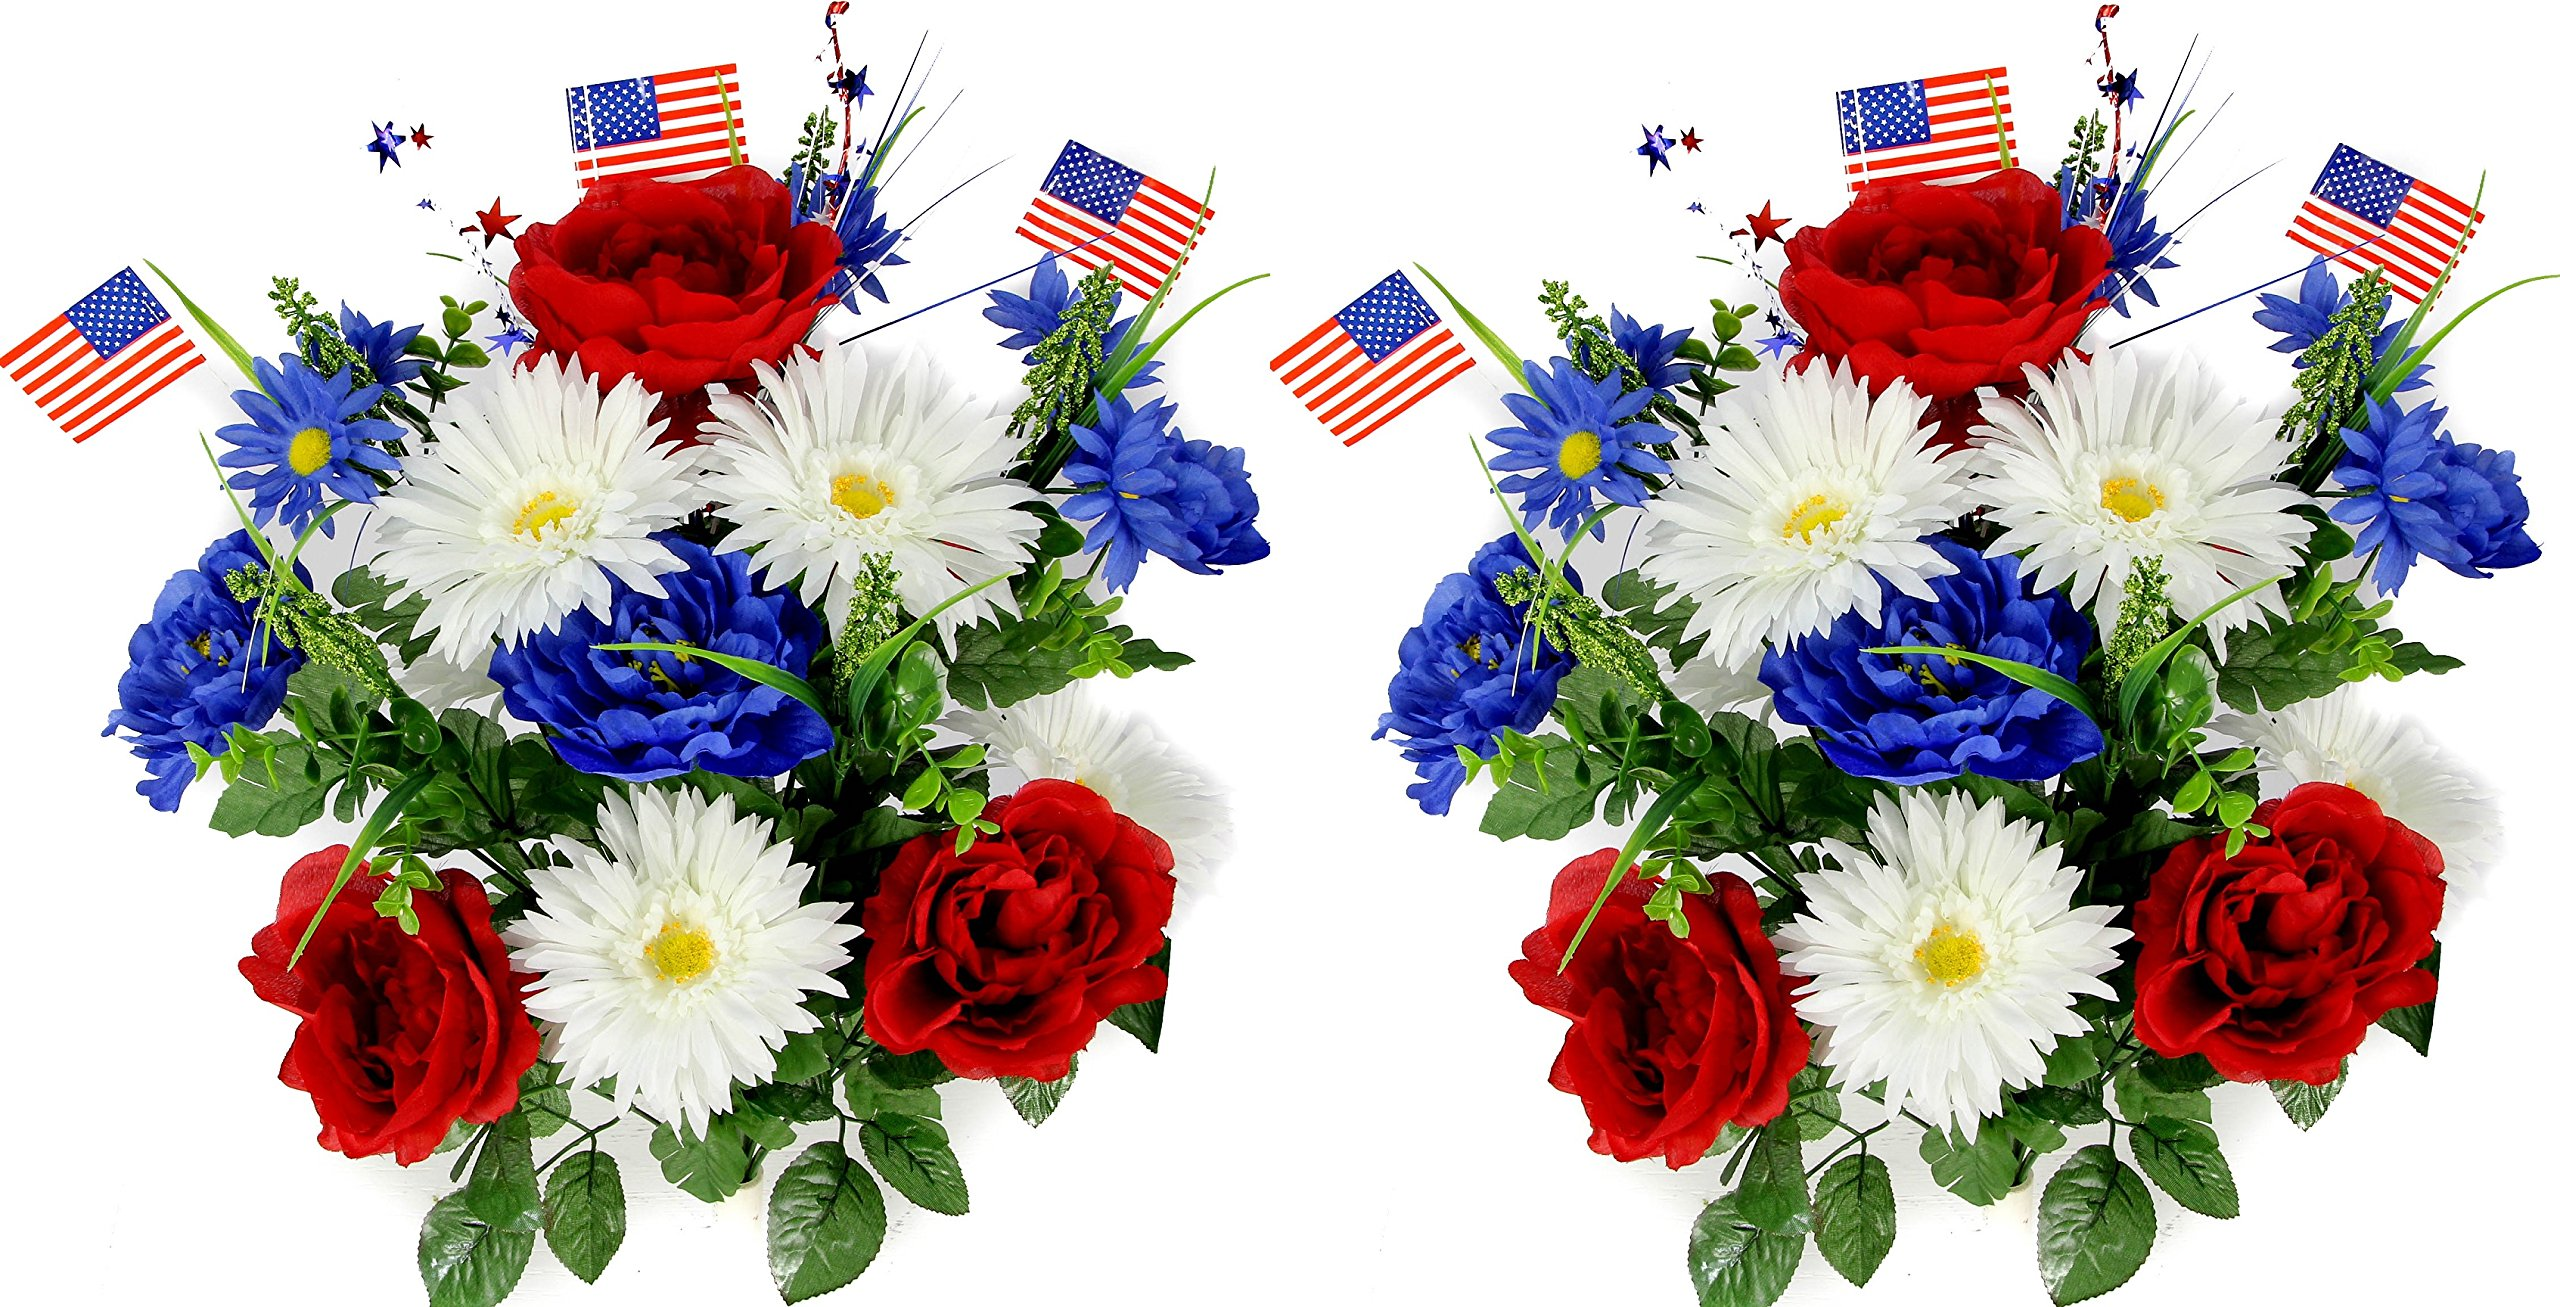 Admired-By-Nature-18-Stems-Artificial-Blooming-Peony-Gerbera-Daisy-with-Small-American-Flags-Fillers-Mixed-Flowers-Bush-for-Memorial-Day-RedBlueWhite-2-Pieces